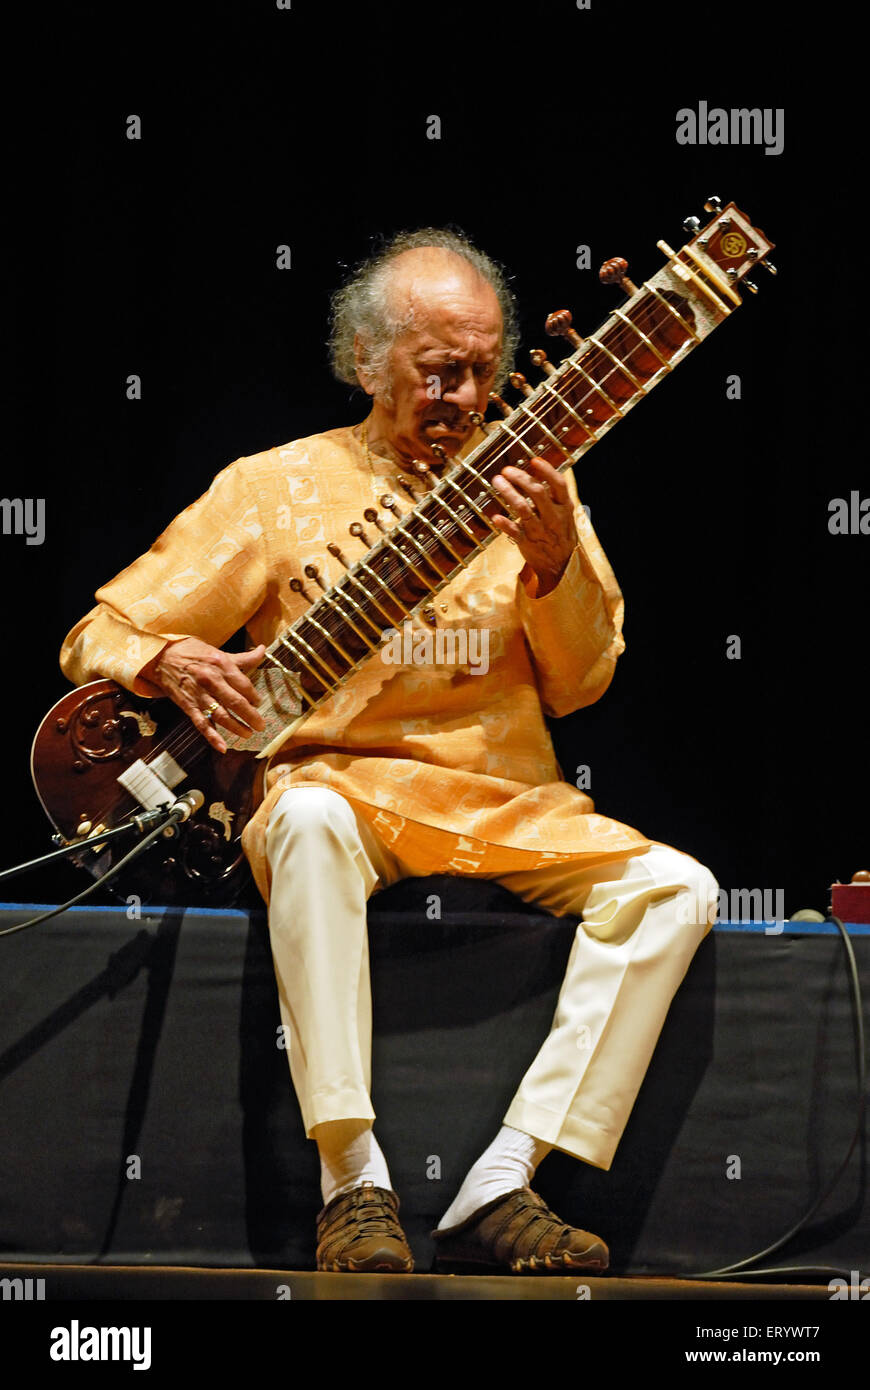 Pandit Ravi Shankar indian classical music maestro - No model release - only for editorial use Stock Photo